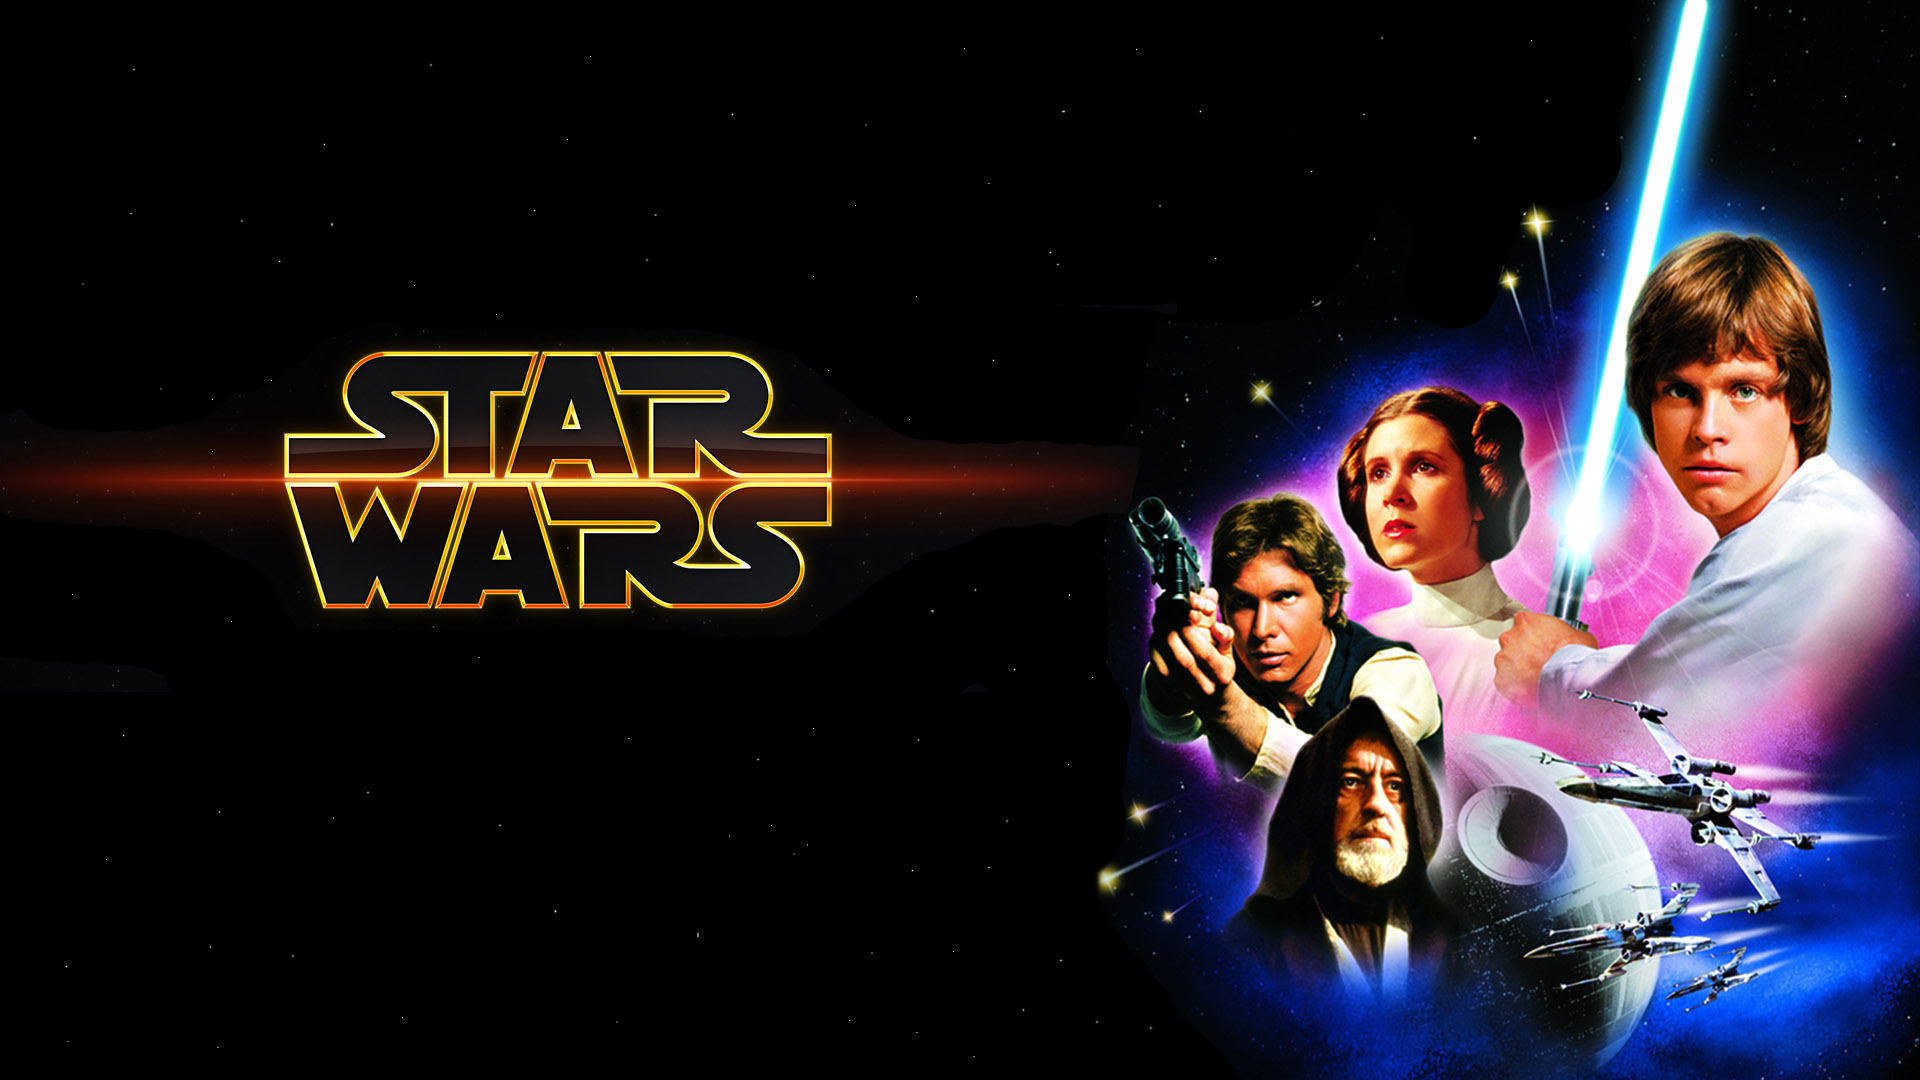 If Jaws was the granddaddy of the summer blockbuster, Star Wars is the ...